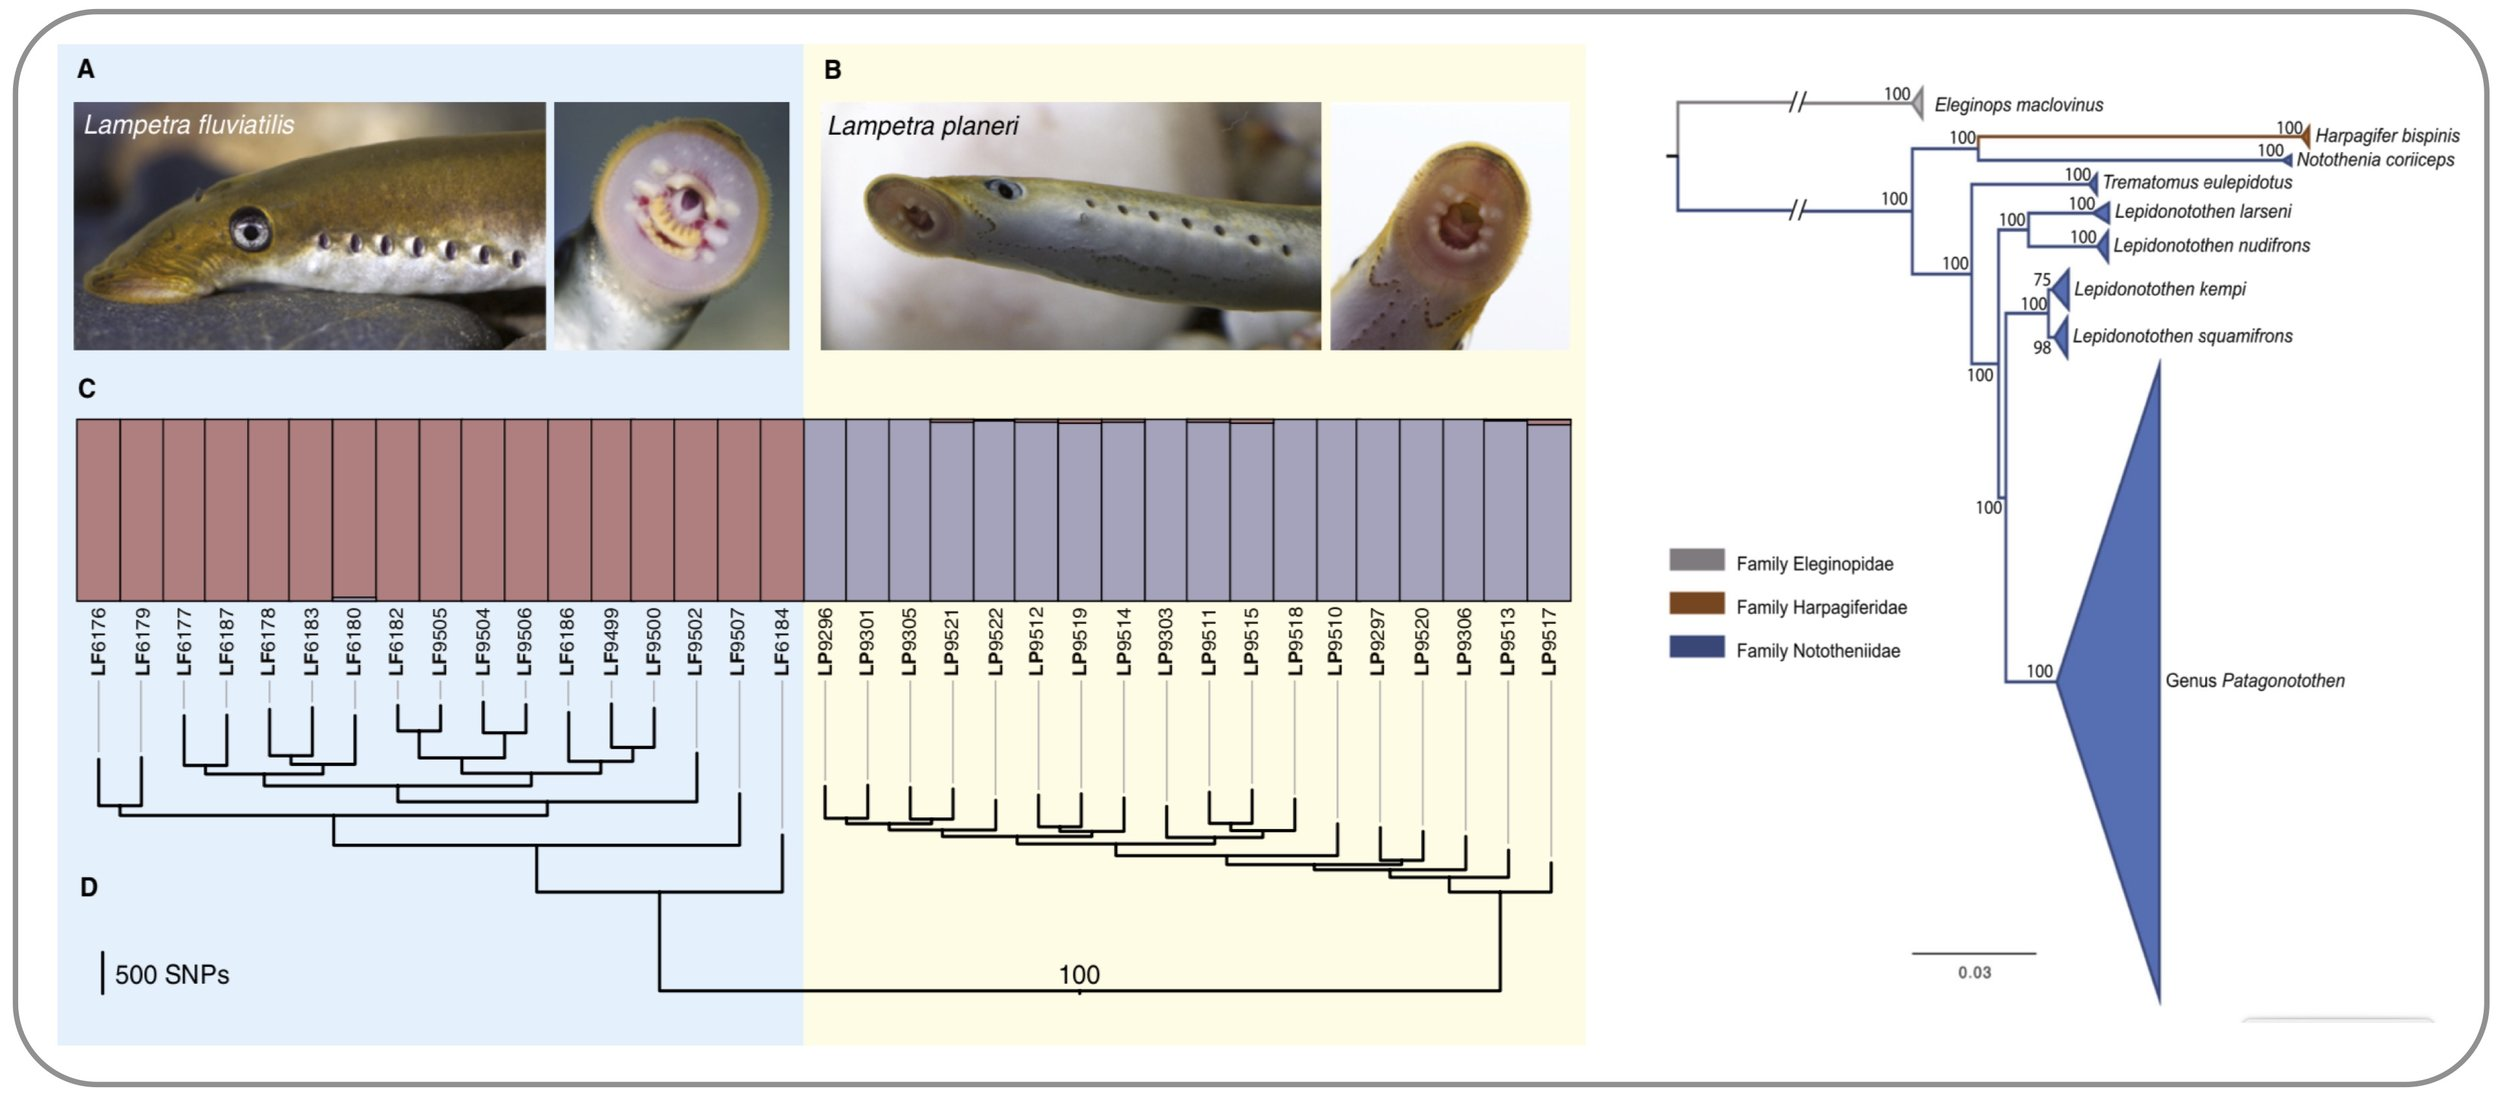 Left: Evidence for  strong genome-wide differentiation between distinct lamprey ecotypes  that were previously thought to be the product of phenotypic plasticity  (   Mateus et al. 2013   ) .  Right:  Phylogenomics  applied to Patagonotothen icefish species reveals  incomplete species boundaries  in this adaptive radiation  (   Ceballos 2019   ).